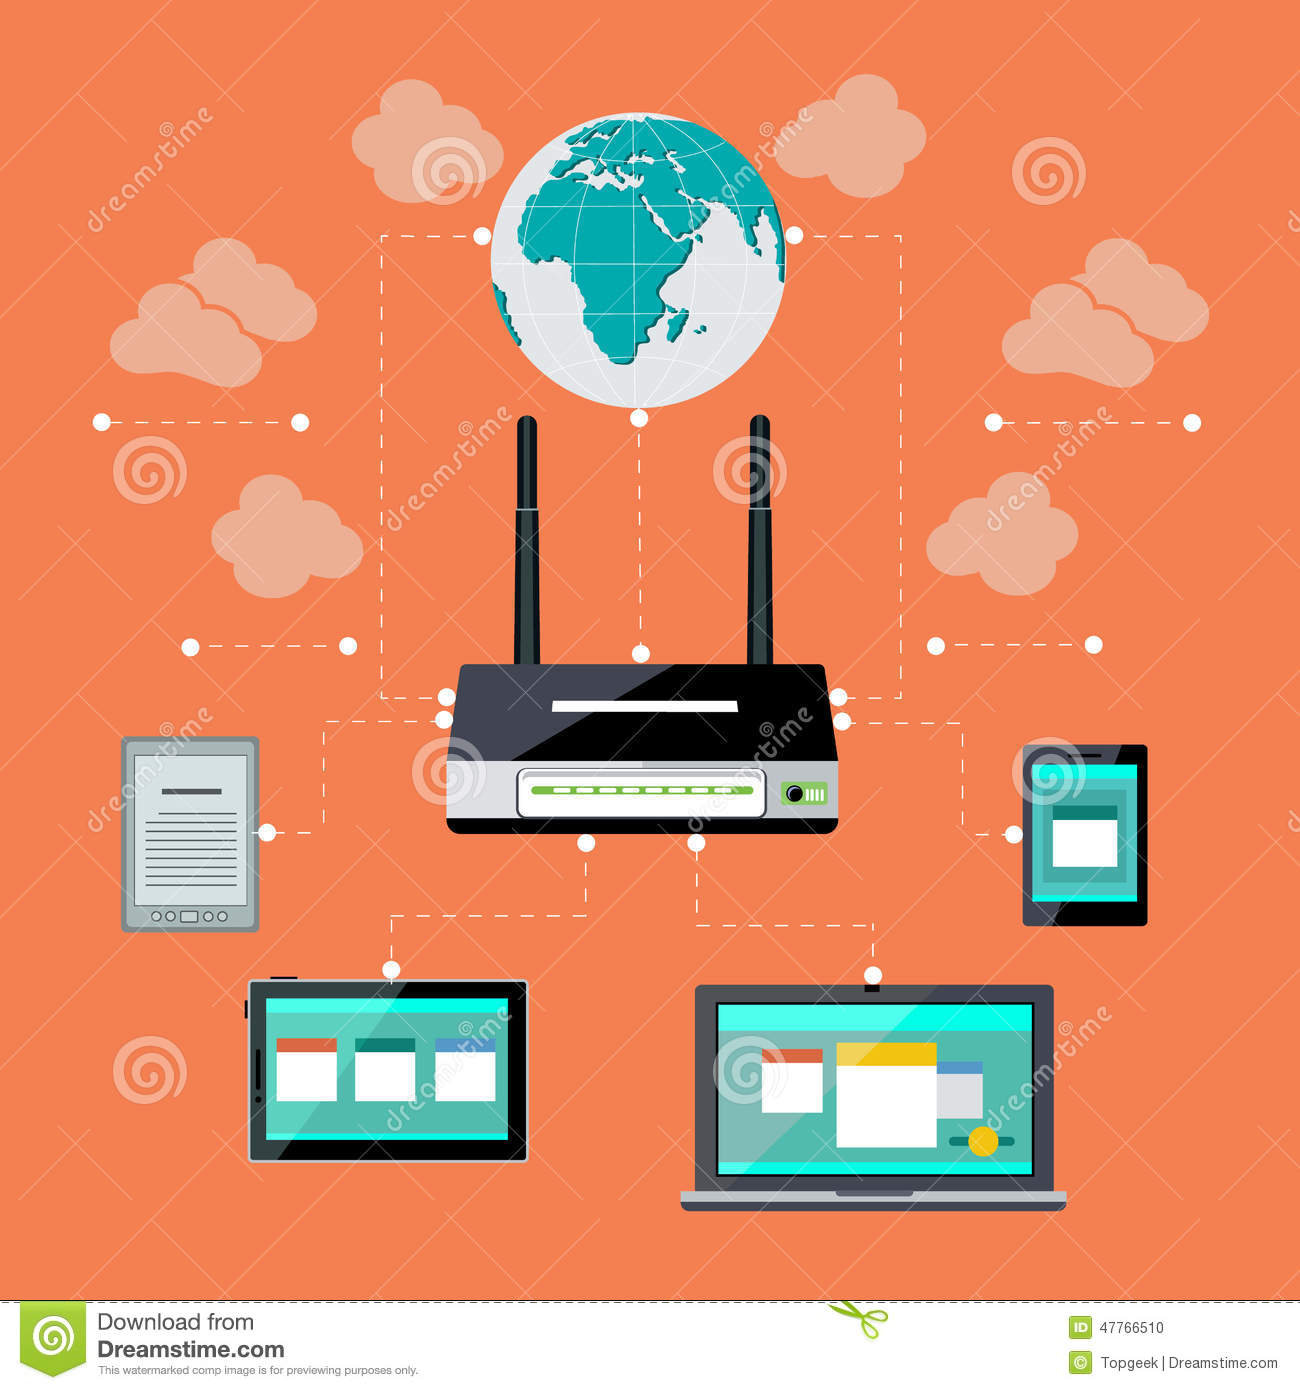 Wifi workstation with globe and router concept stock vector download wifi workstation with globe and router concept stock vector illustration of electronics gateway greentooth Choice Image